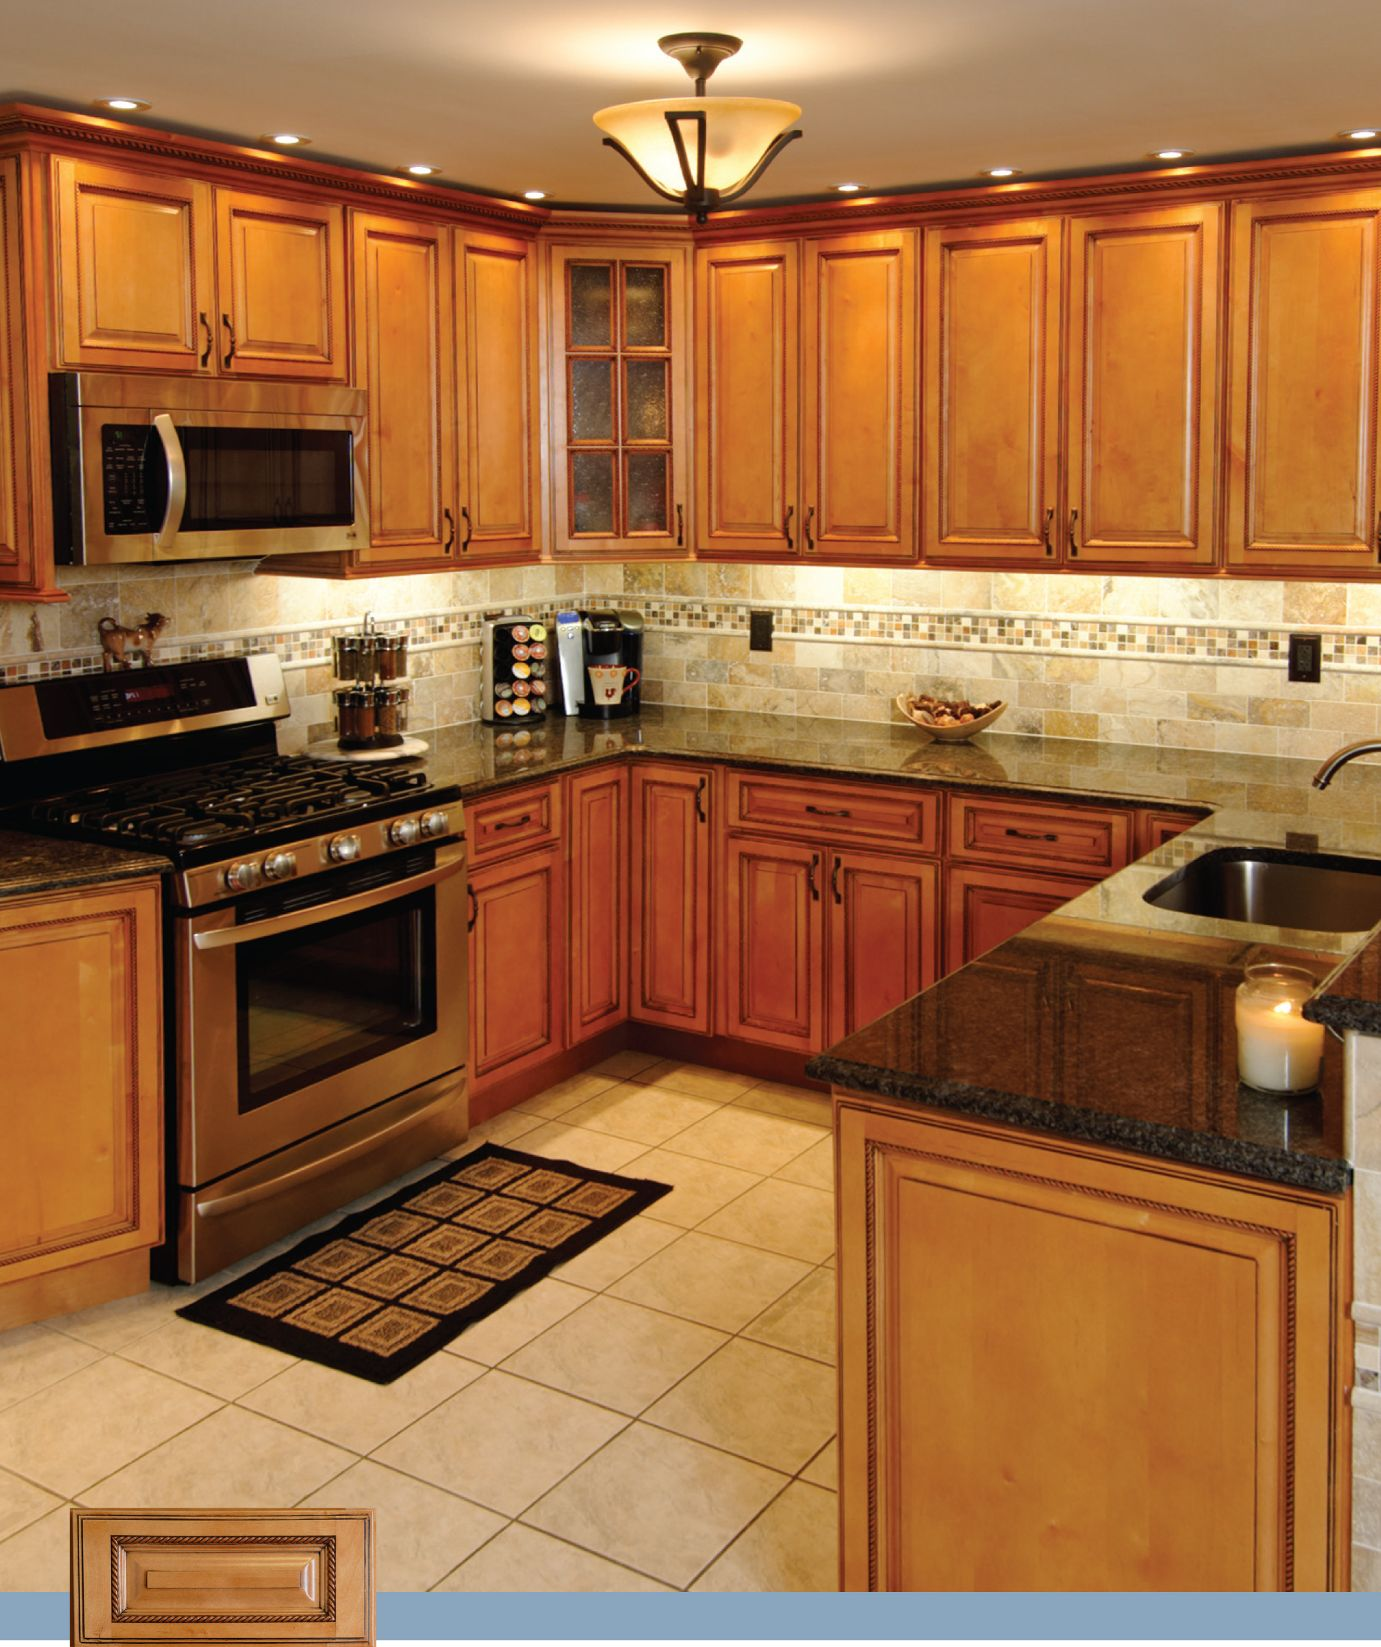 Pictures Of Oak Kitchen Cabinets: RTA Kitchen Cabinet Discounts MAPLE OAK BAMBOO BIRCH